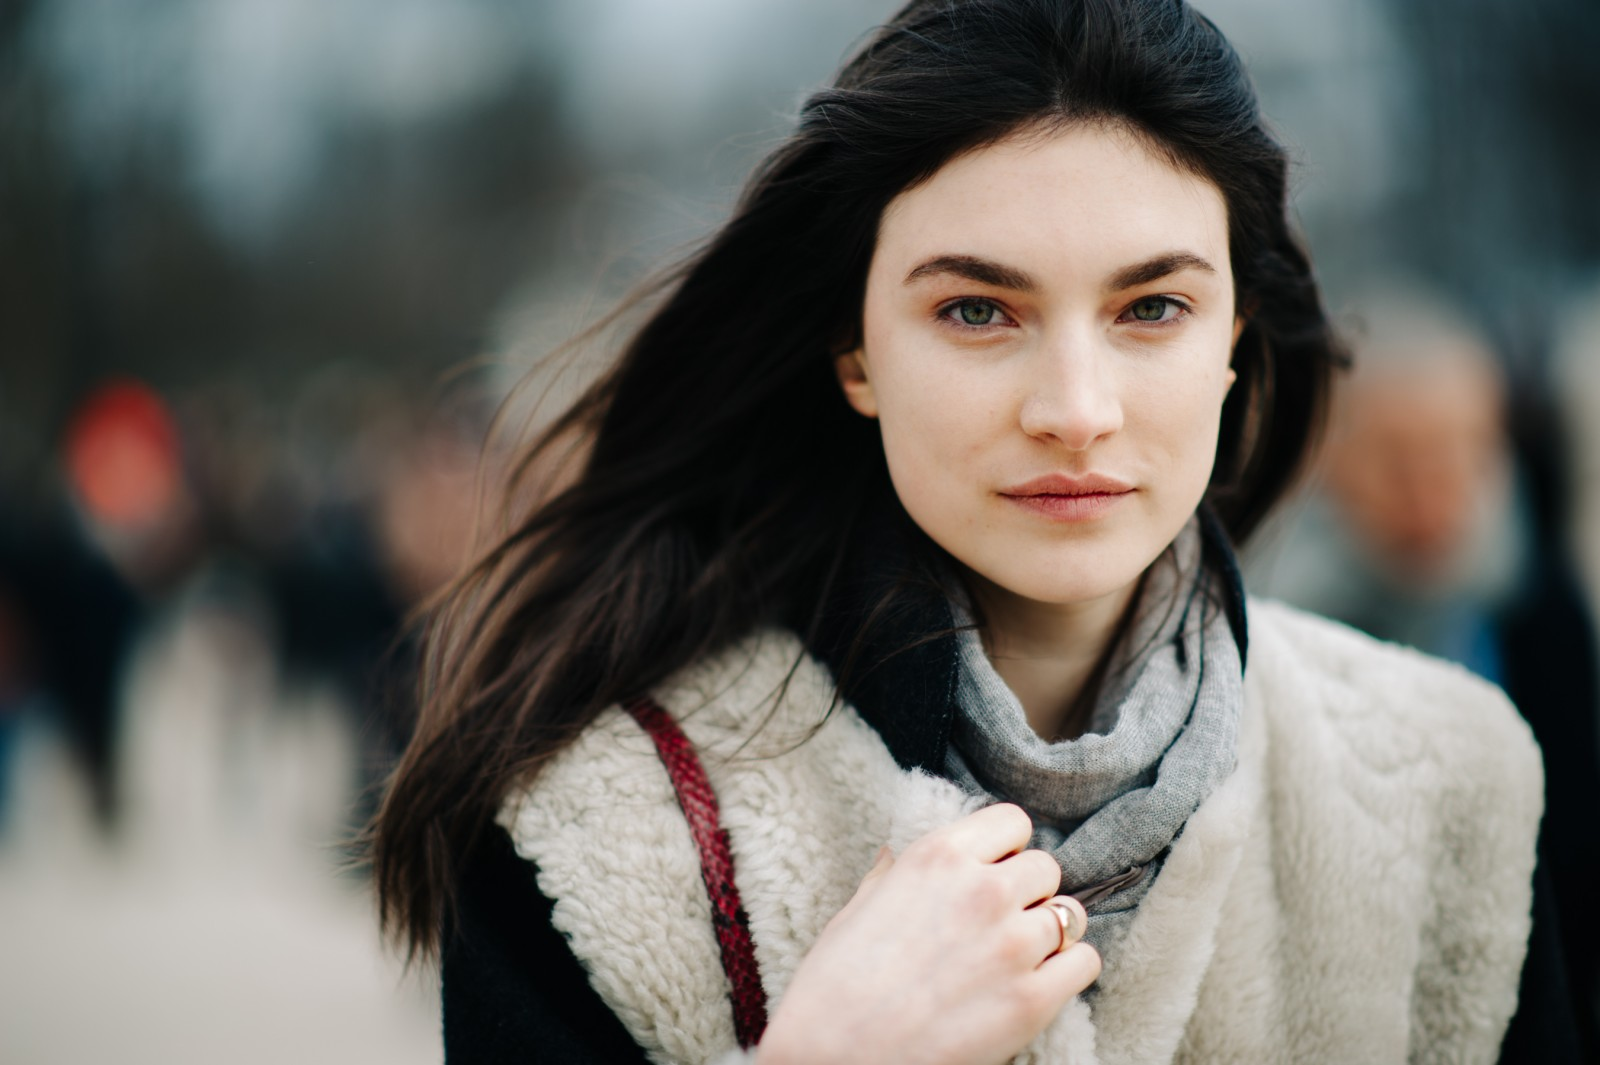 French Chic is all about decoding the Secrets of Paris Fashion, like wearing minimal amounts of makeup, like this girl who's gone for a natural look.